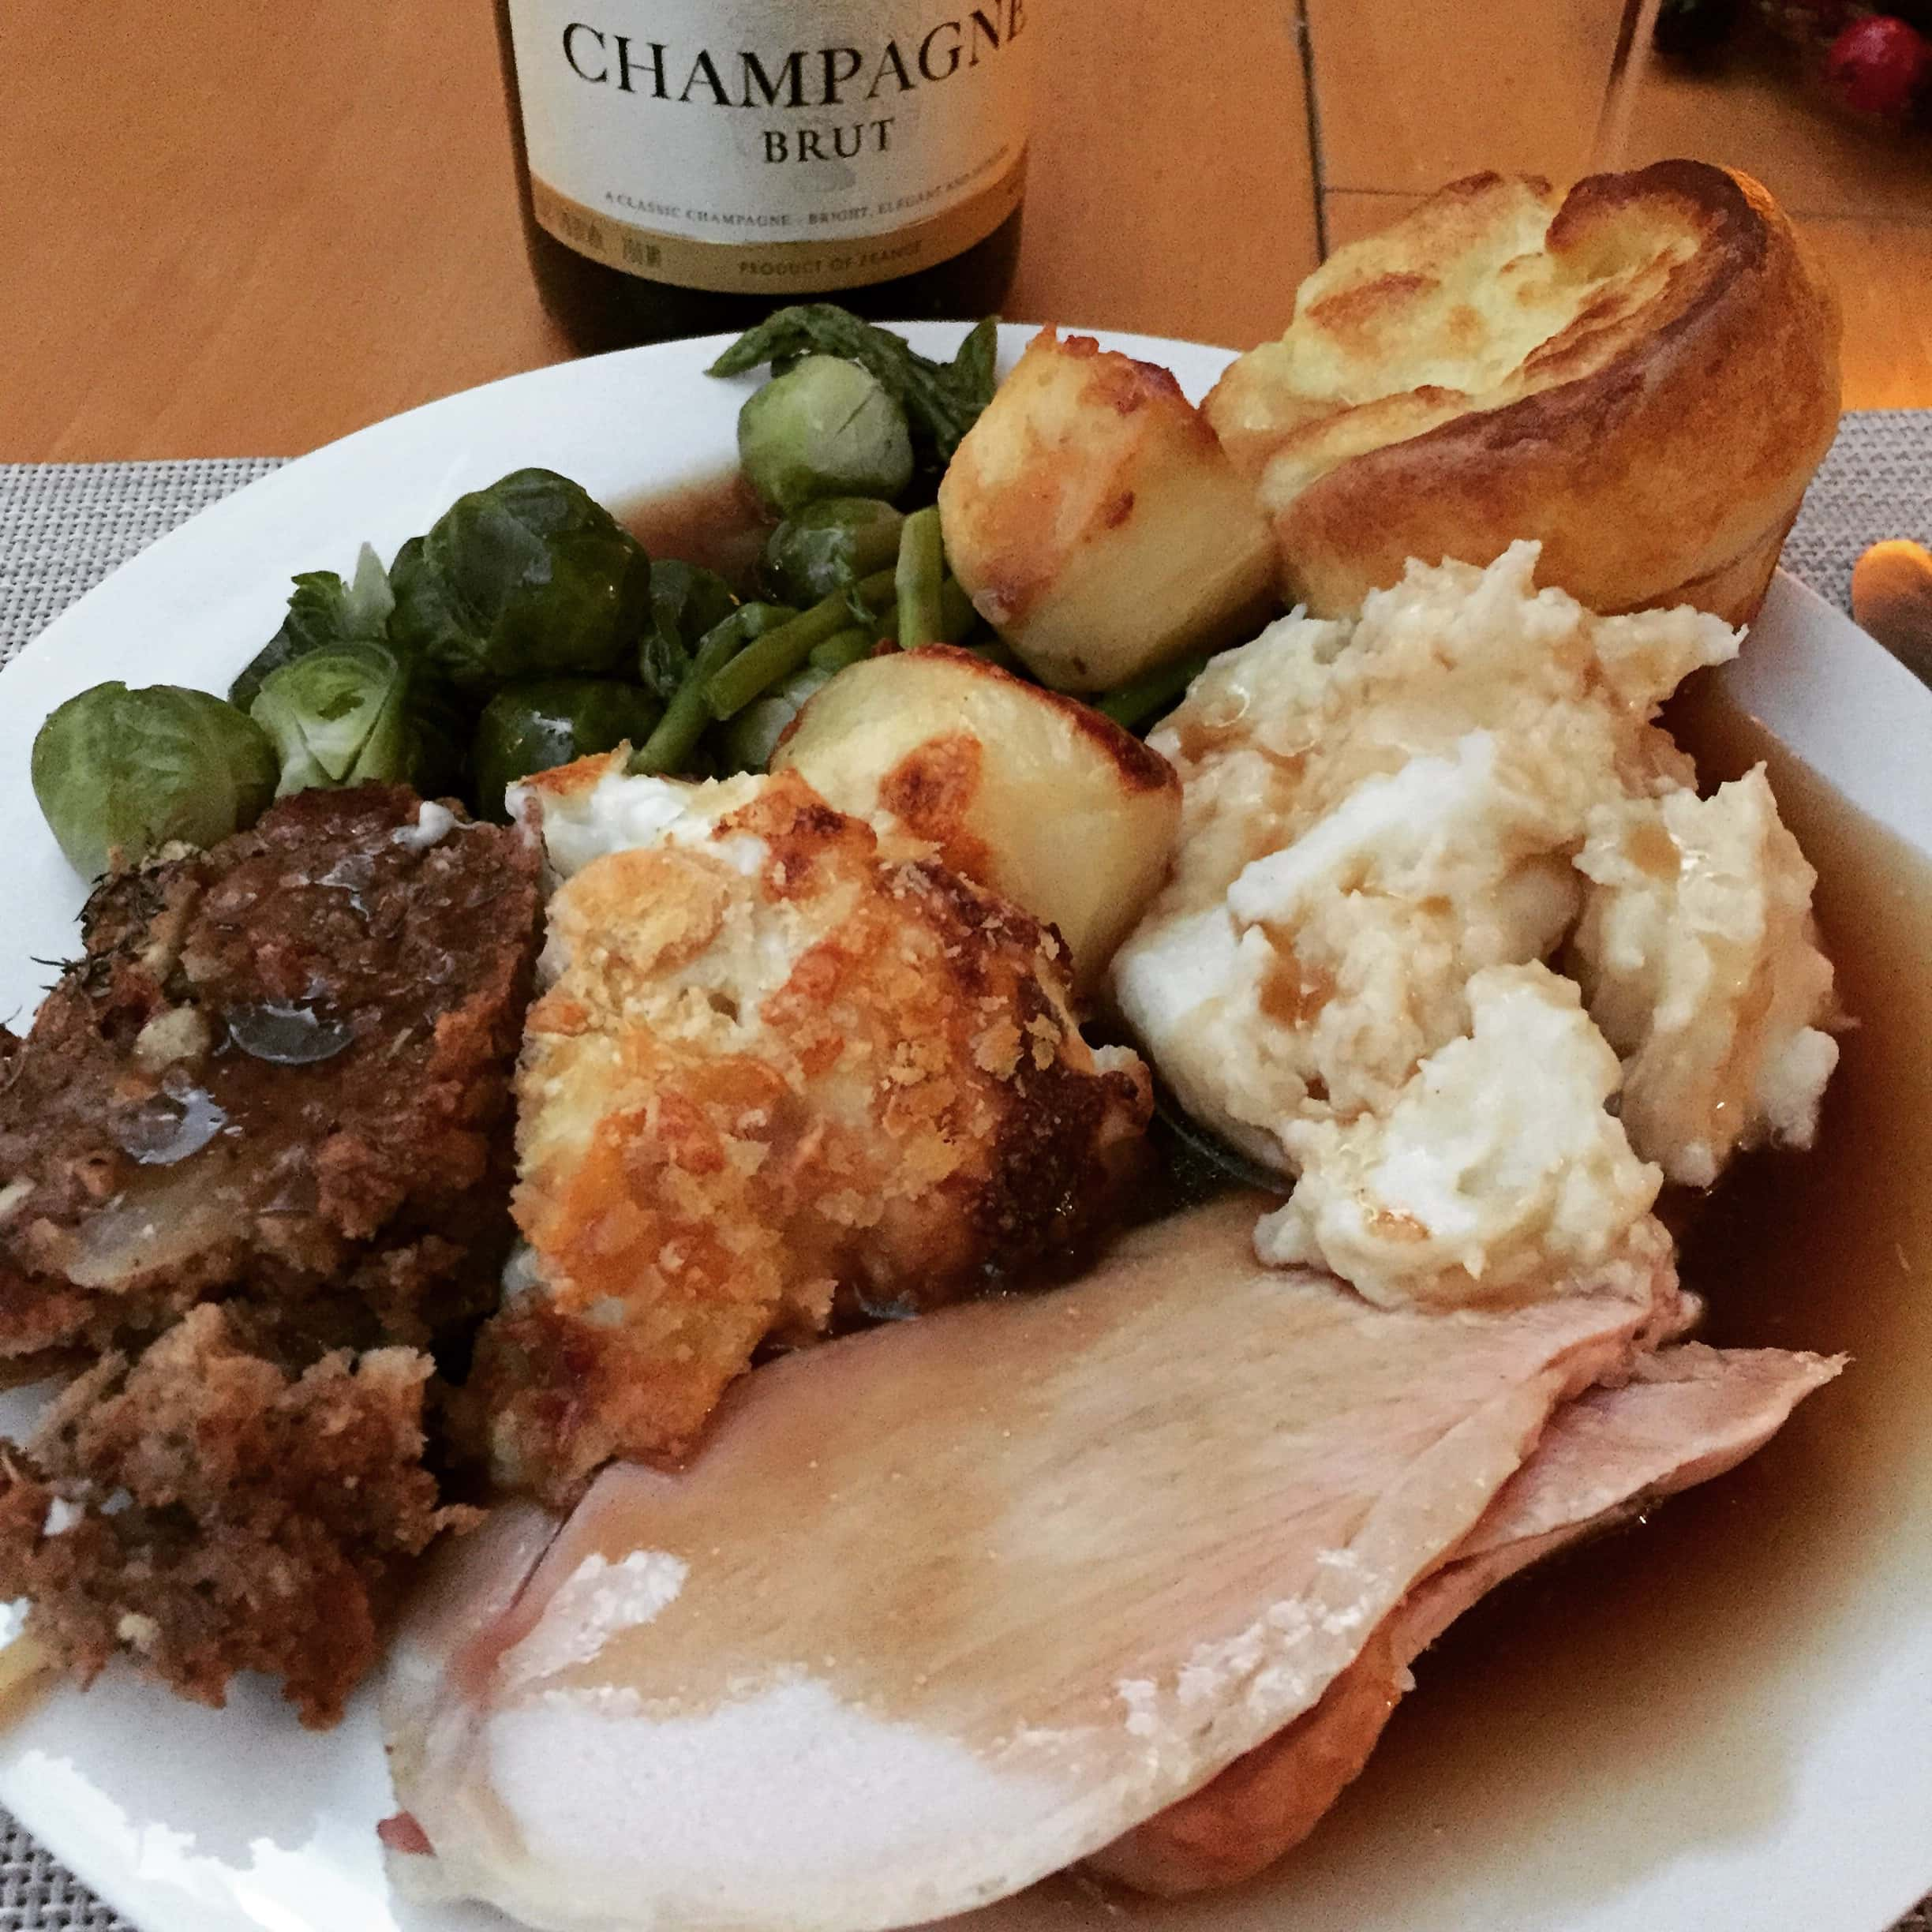 roast dinner on a plate with champagne in the background